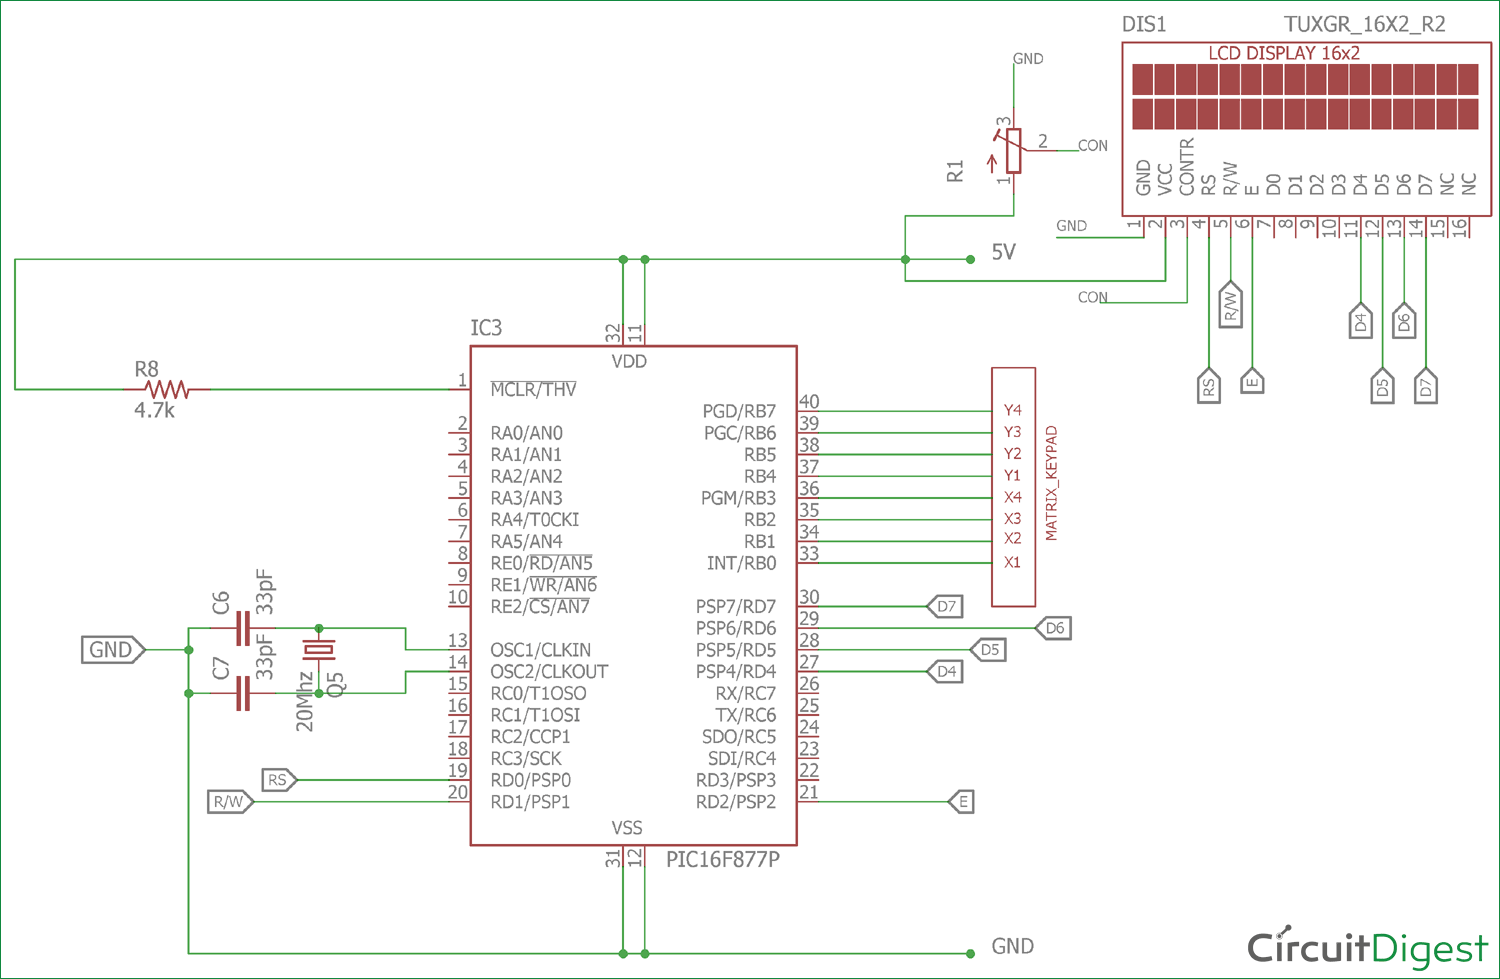 Circuit Diagram 4x4 Matrix Keypad Wiring Library Digital Code Lock Project Using 8051 Microcontroller At89c51 With Interfacing Pic